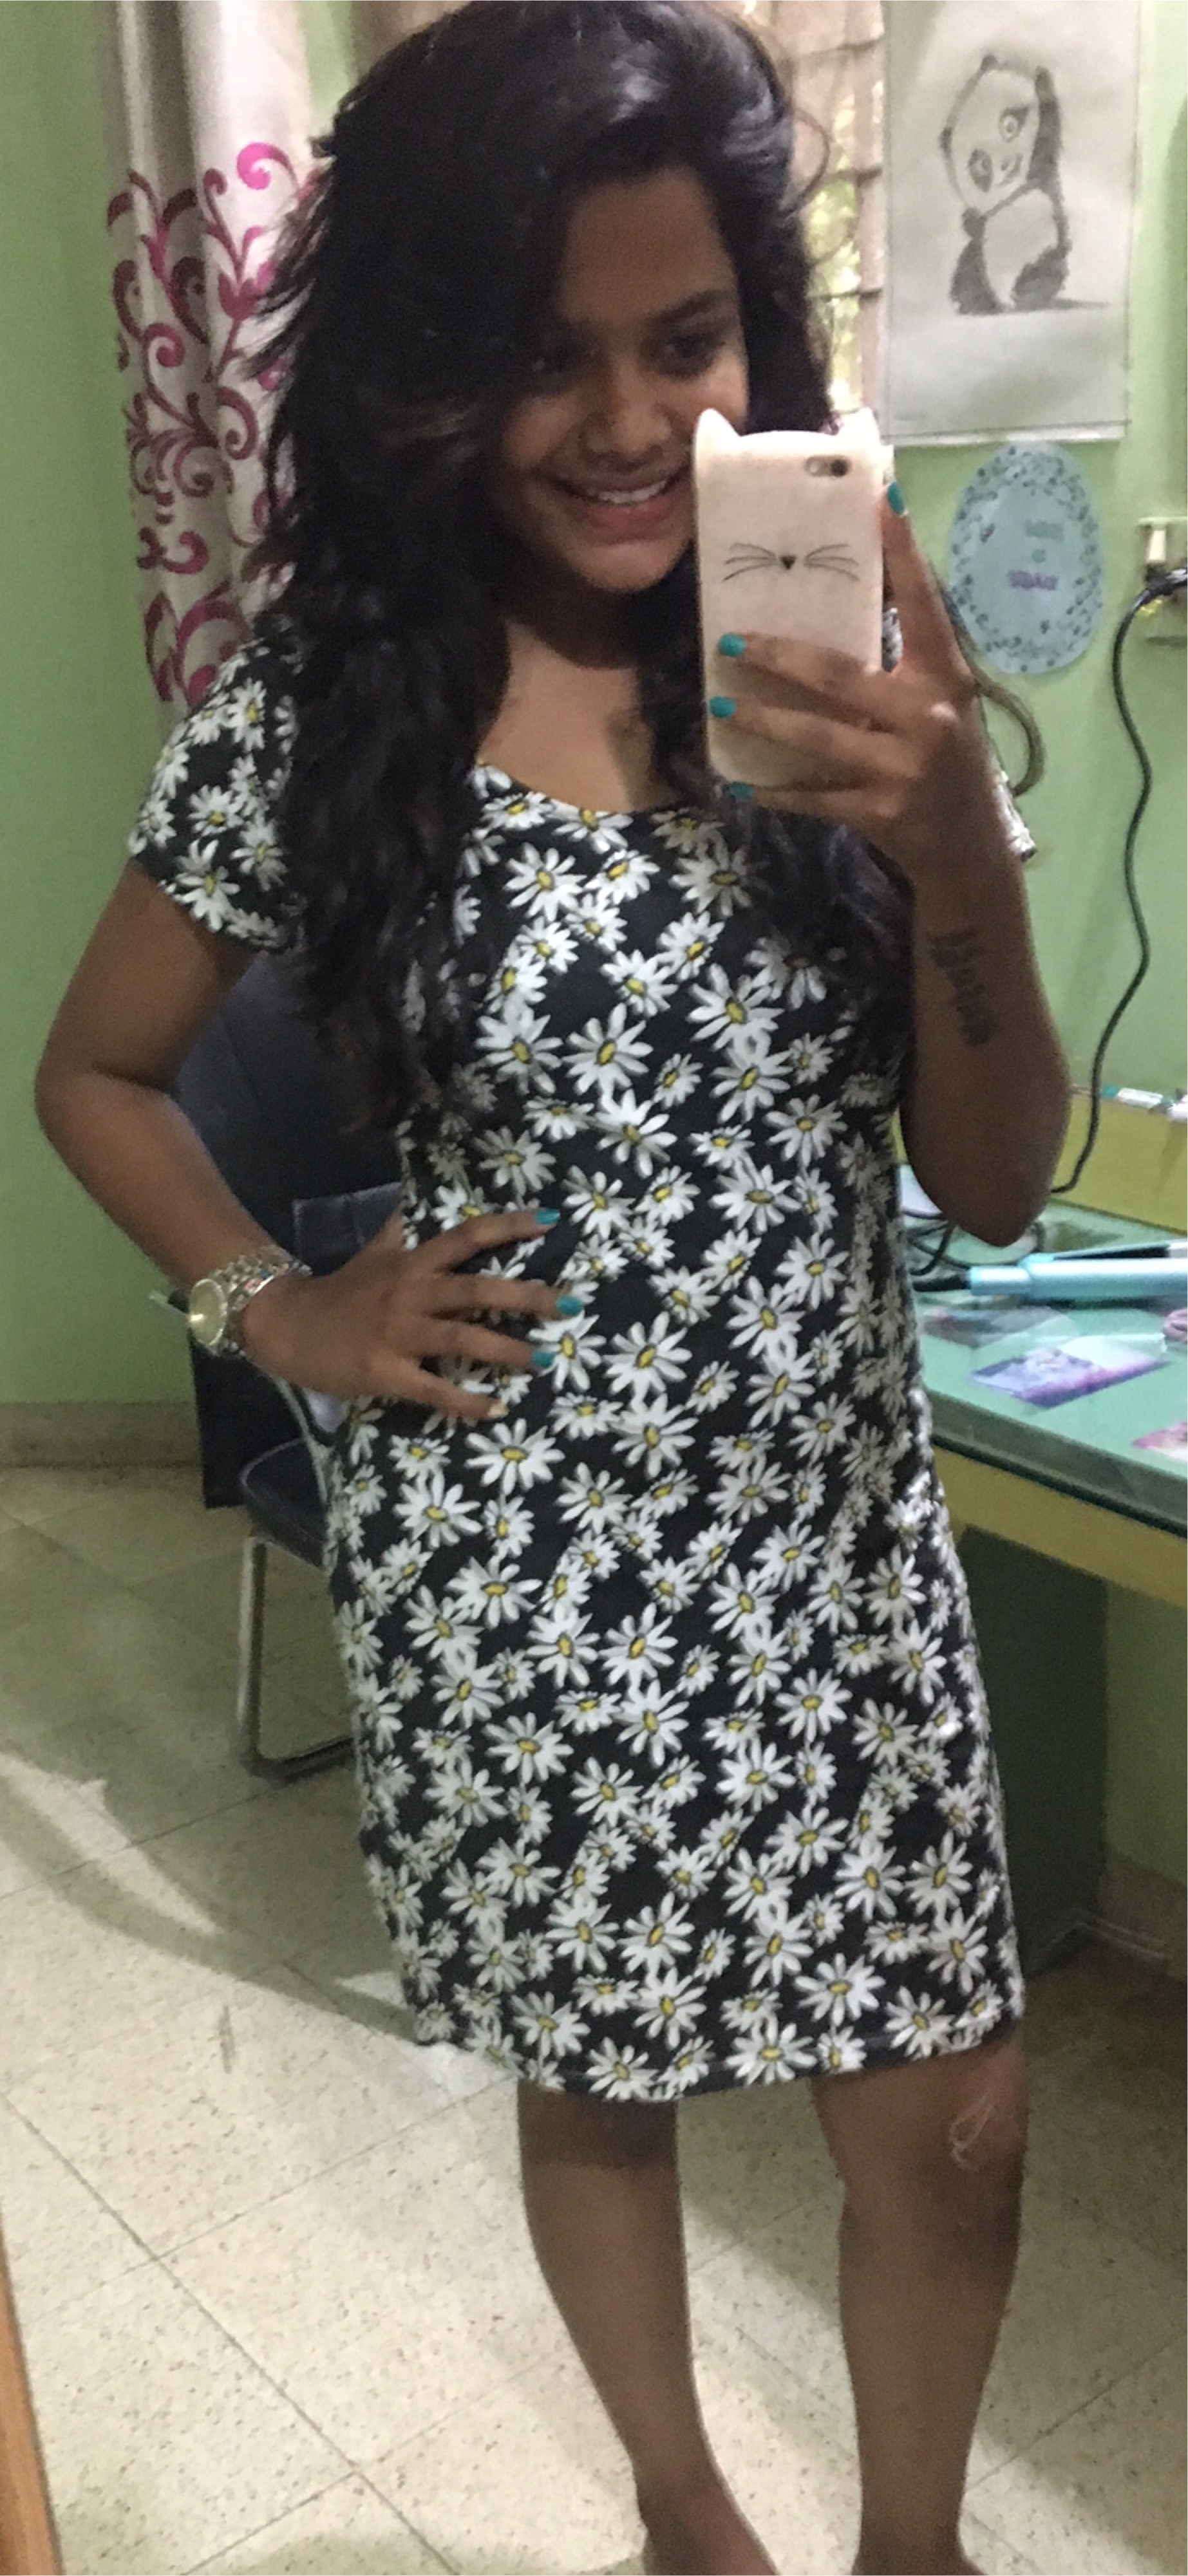 Floral dresses are love❤️🌺